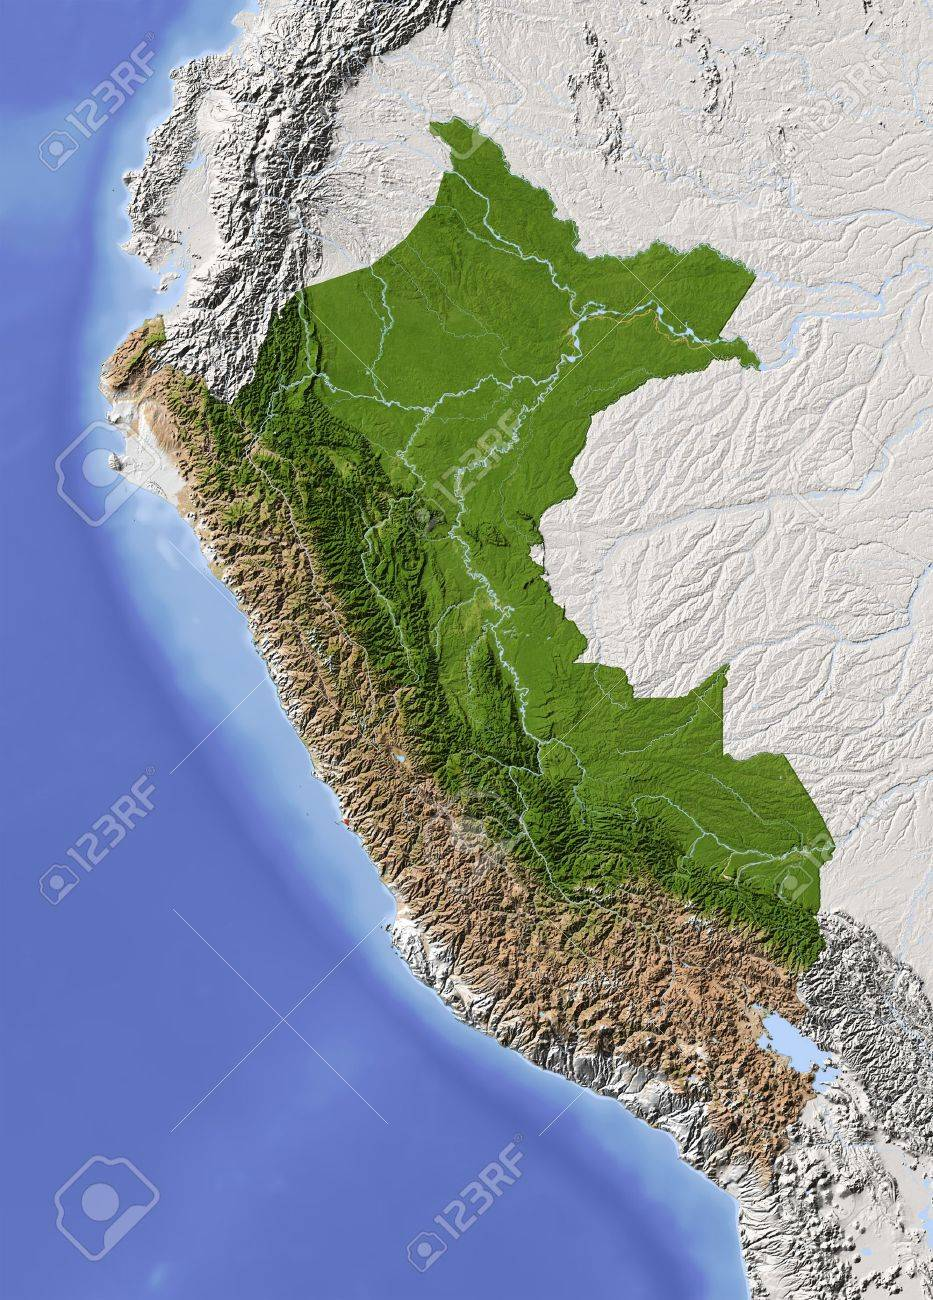 Peru. Shaded relief map. Surrounding territory greyed out. Colored according to vegetation. Includes clip path for the state area.Projection: MercatorExtents: -83/-67/-20/2Data source: NASA - 10962397